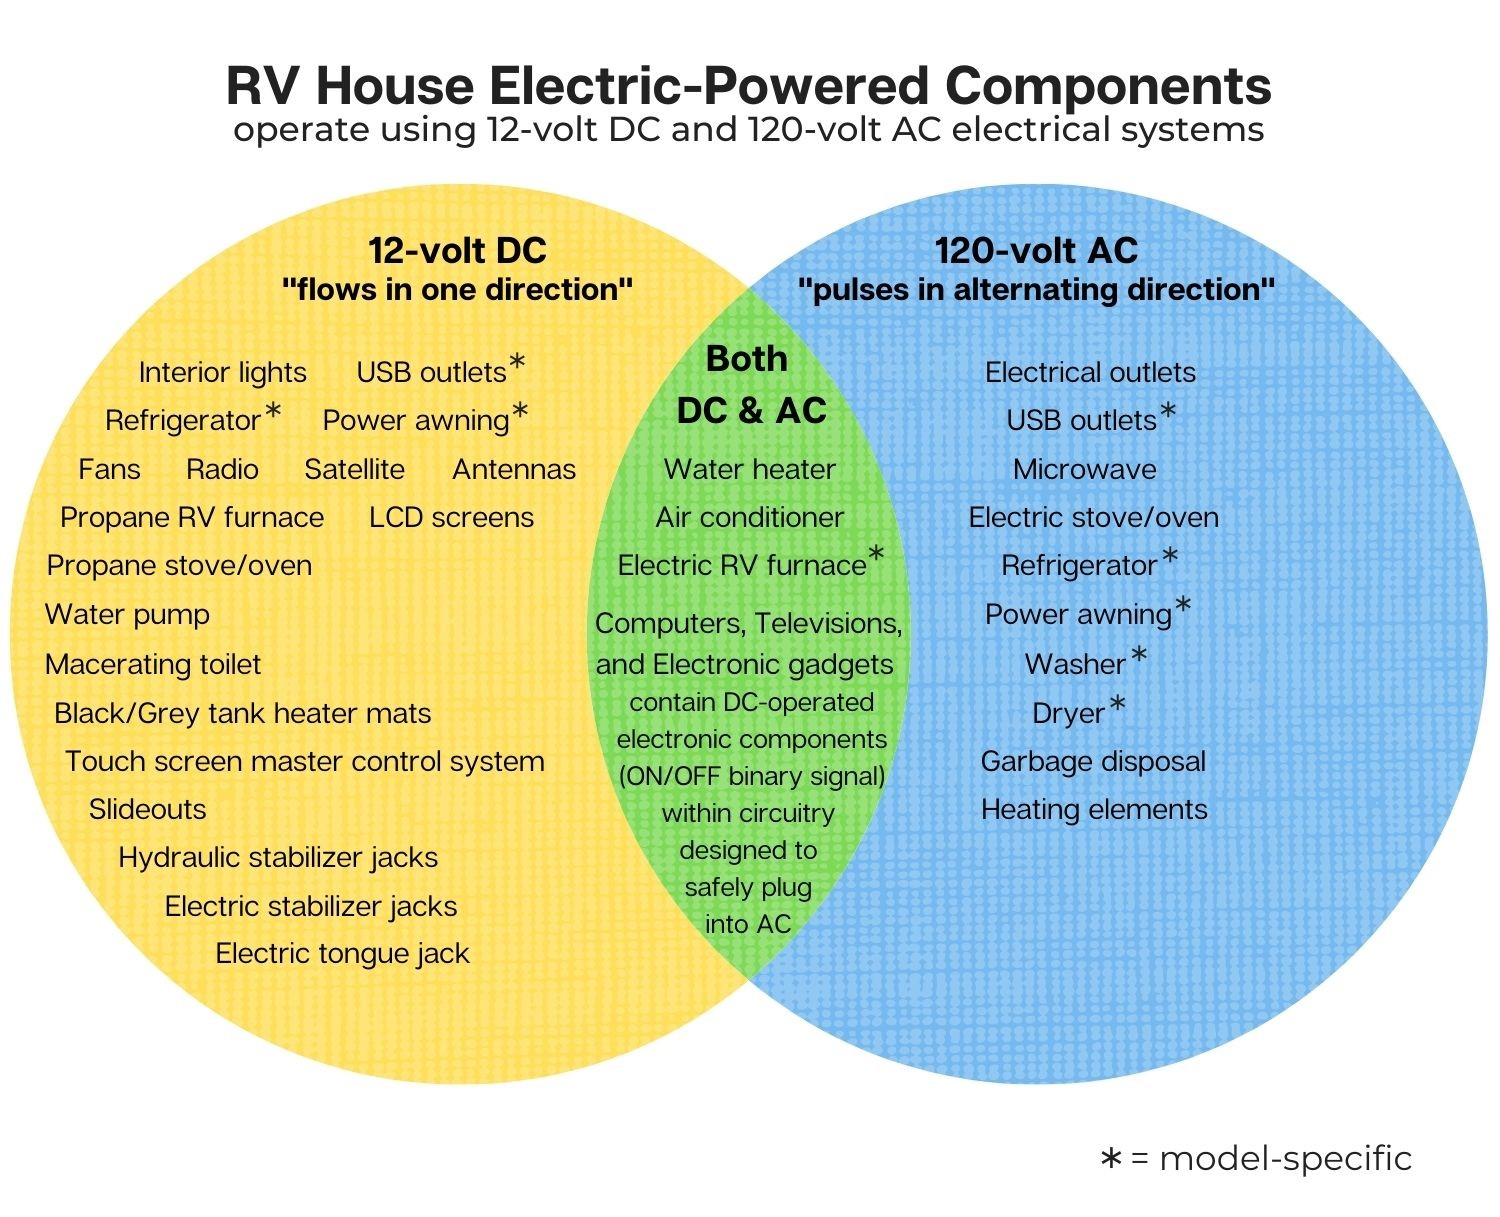 Venn diagram listing RV House Electric-Powered Components drawing from either or both 12-volt DC and 120-volt AC electrical systems.